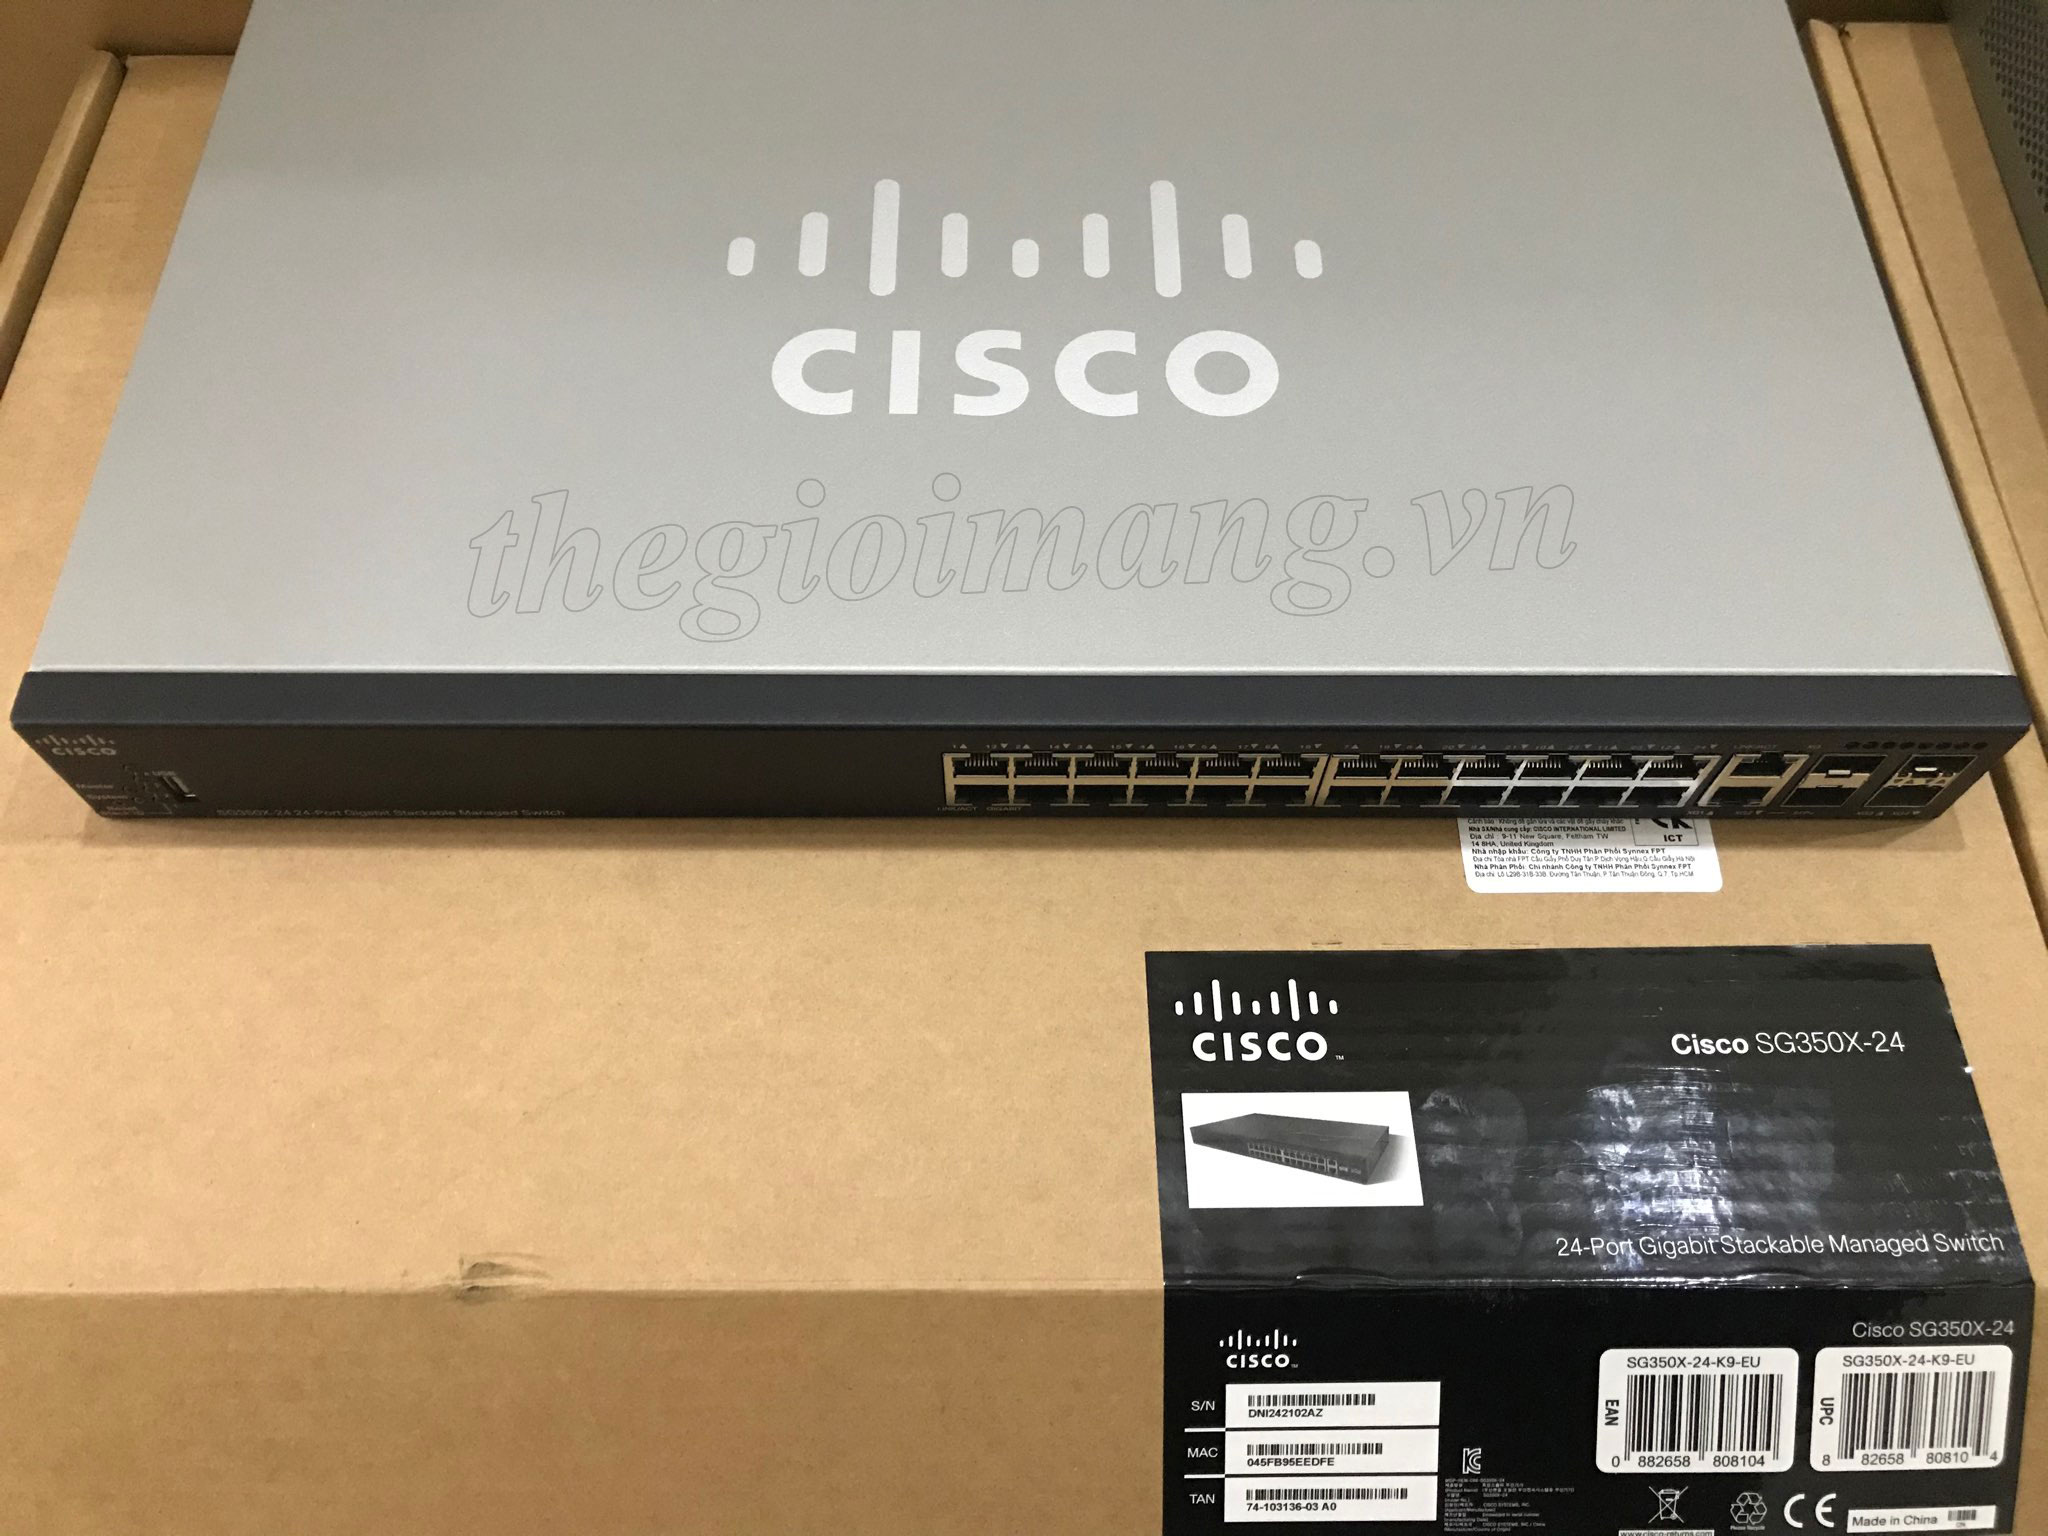 Cisco SG350X-24-K9-EU